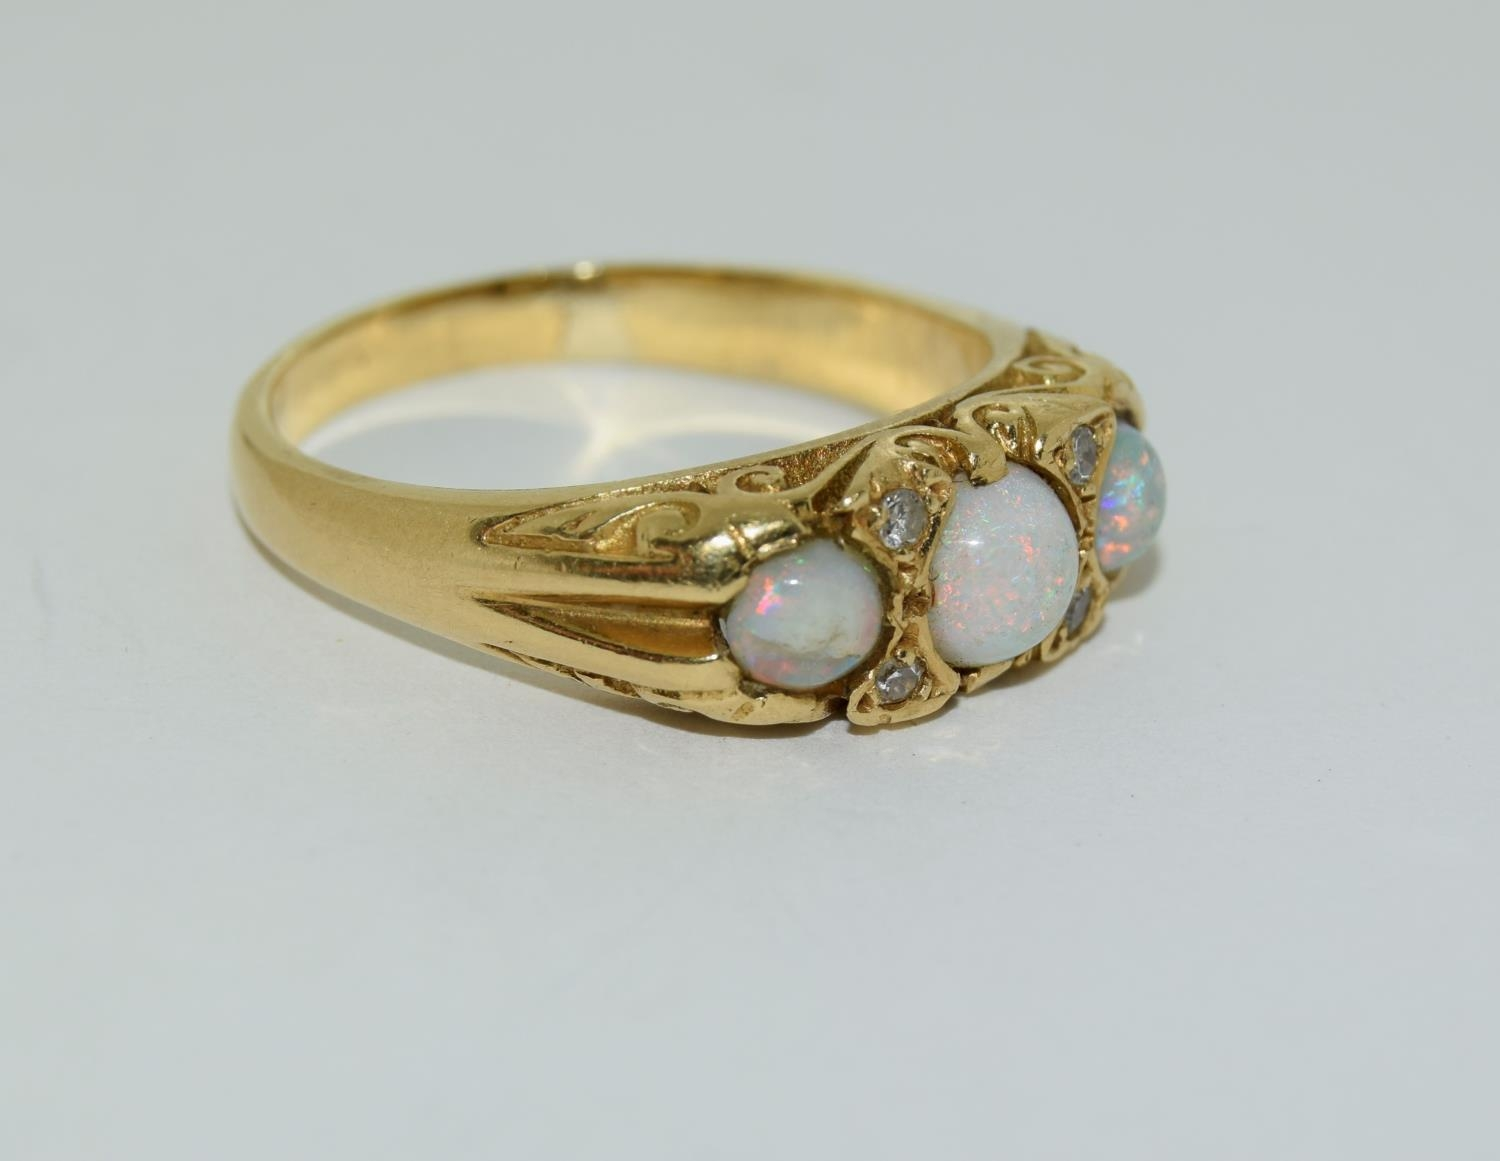 Opal/Diamond 3 stone 18ct gold heavy 6.6g ring, Size P. - Image 5 of 6